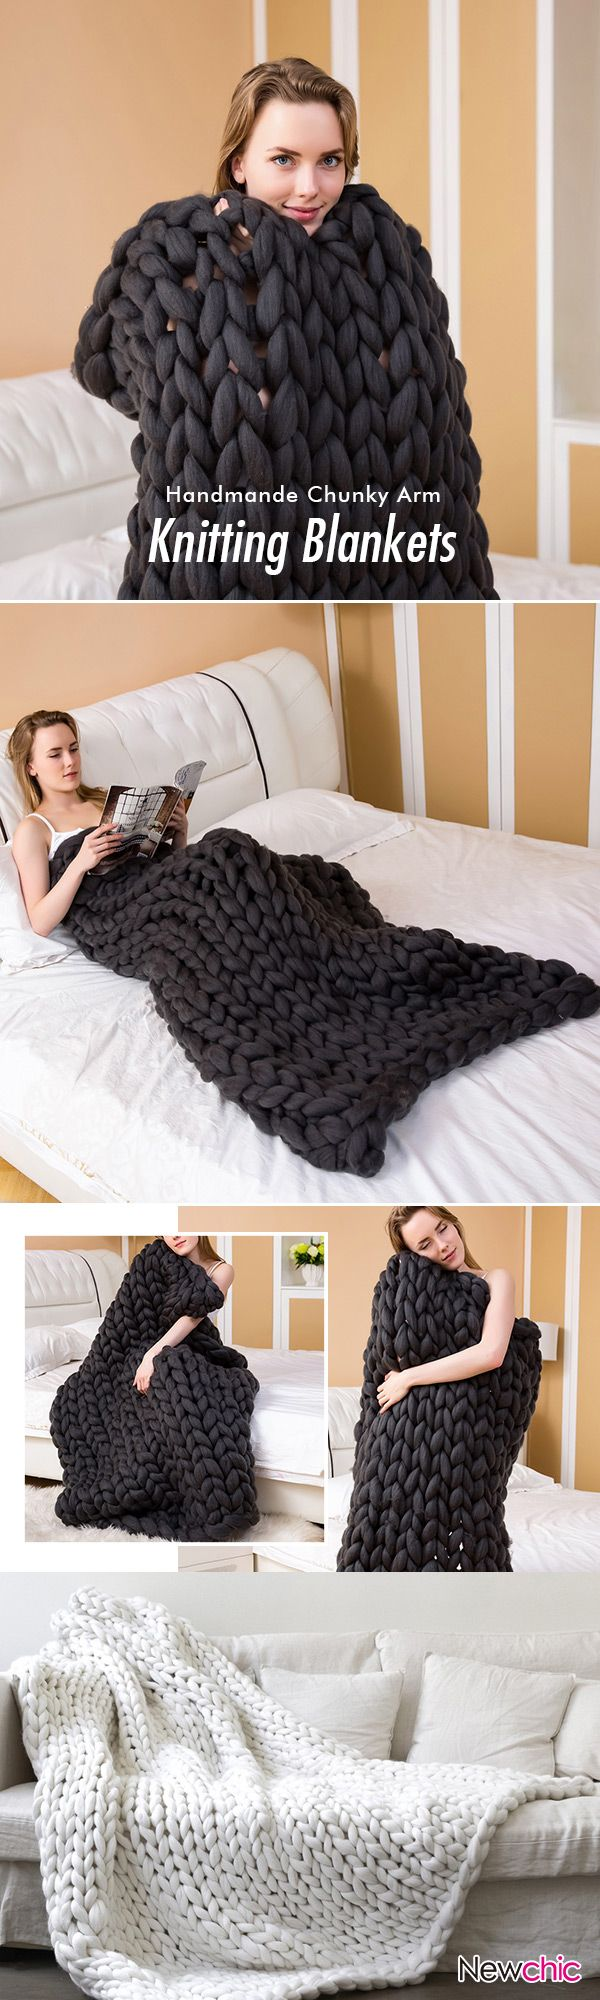 US$17.44  New Handmade Chunky Knit Blanket Thick Yarn Merino Throw Bed Sofa Decor#newchic#bedding#knitting#handmade